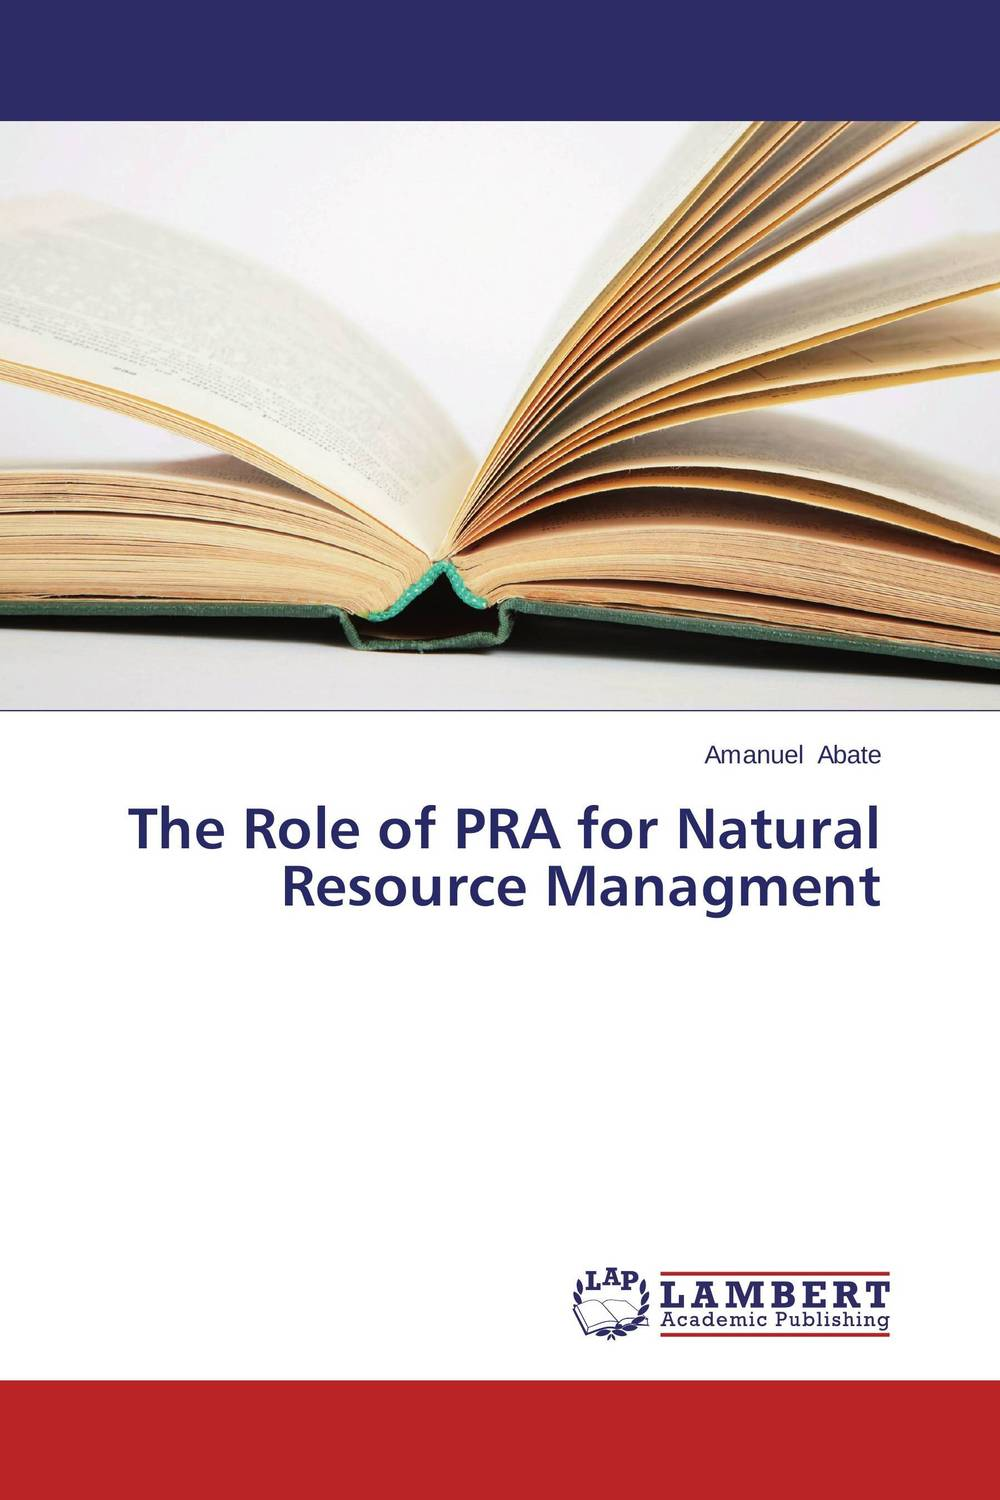 The Role of PRA for Natural Resource Managment portney current issues in u s natural resource policy